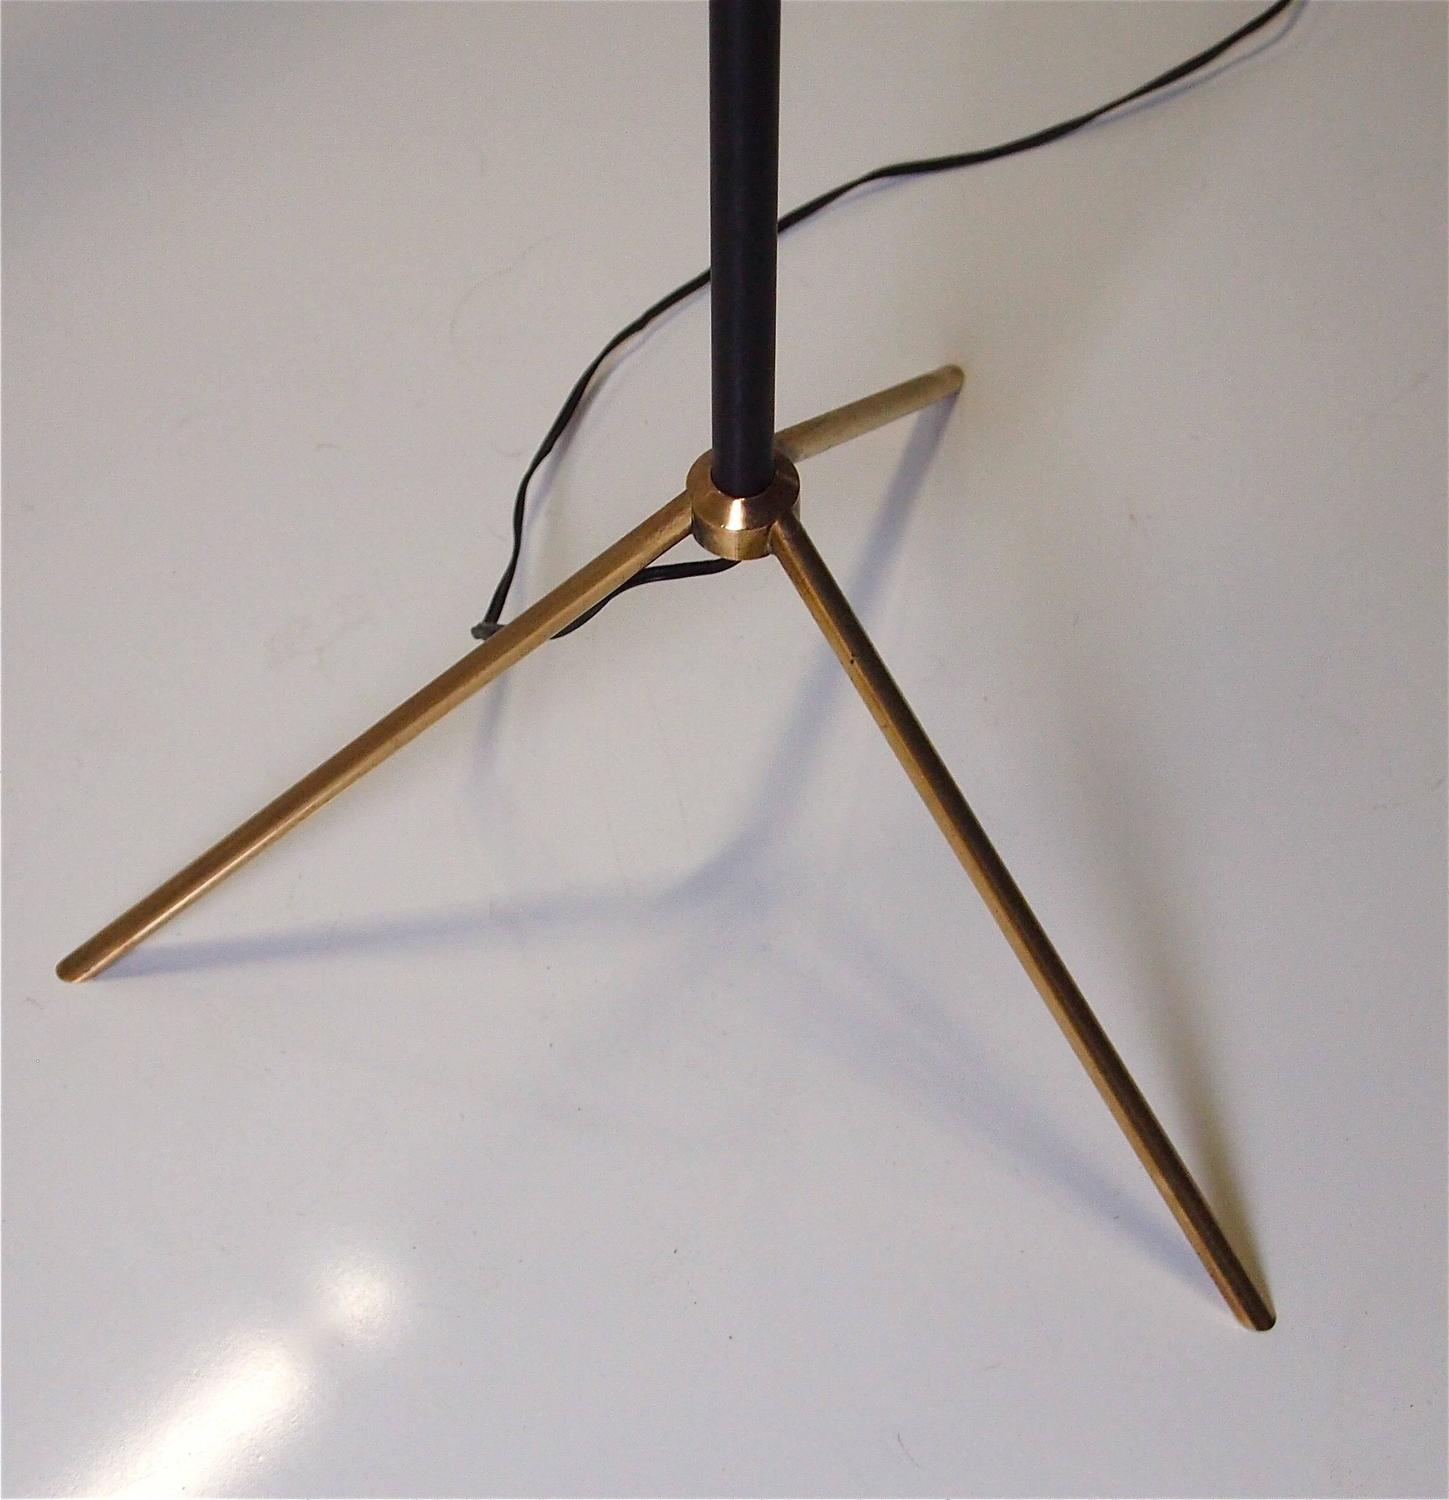 1950s Floor Lamp By Maison Arlus At 1stdibs